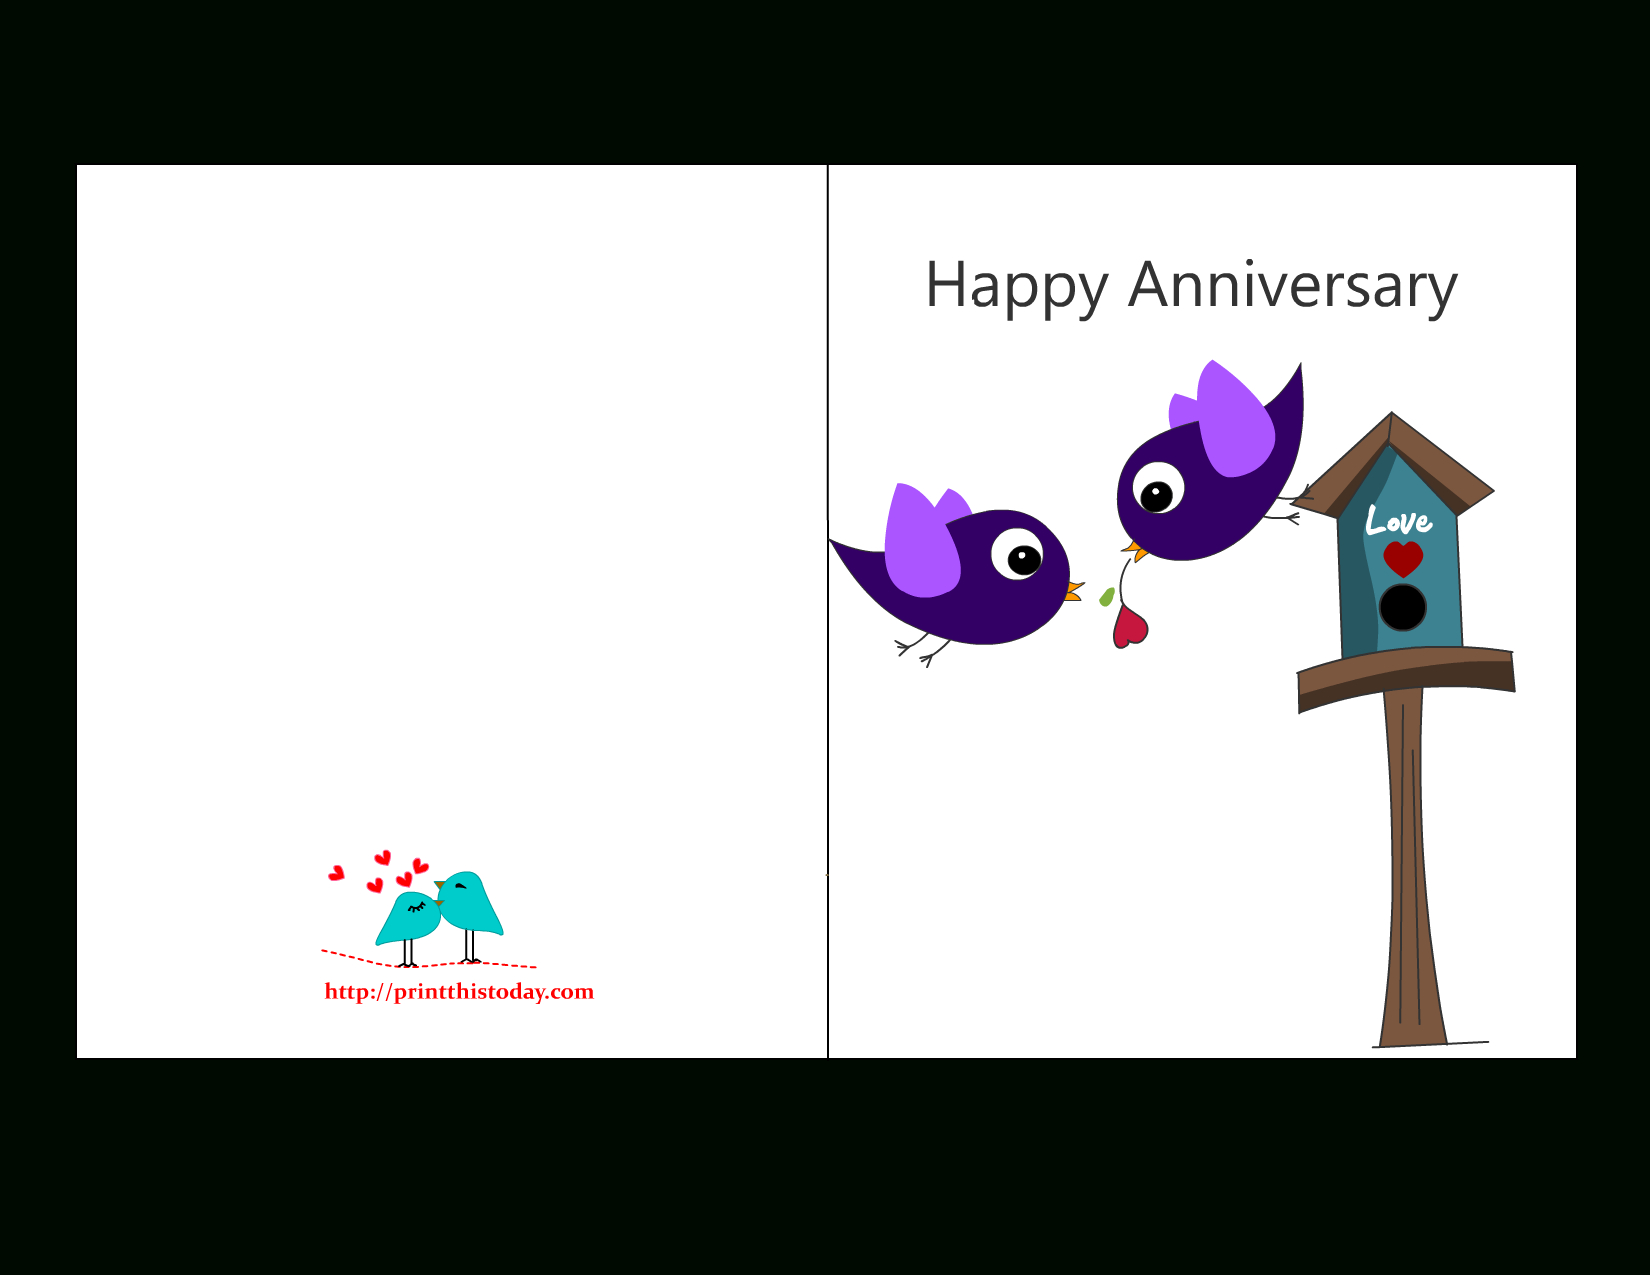 Free Anniversary Cards To Print | Free Printable Anniversary Cards - Free Printable Cards